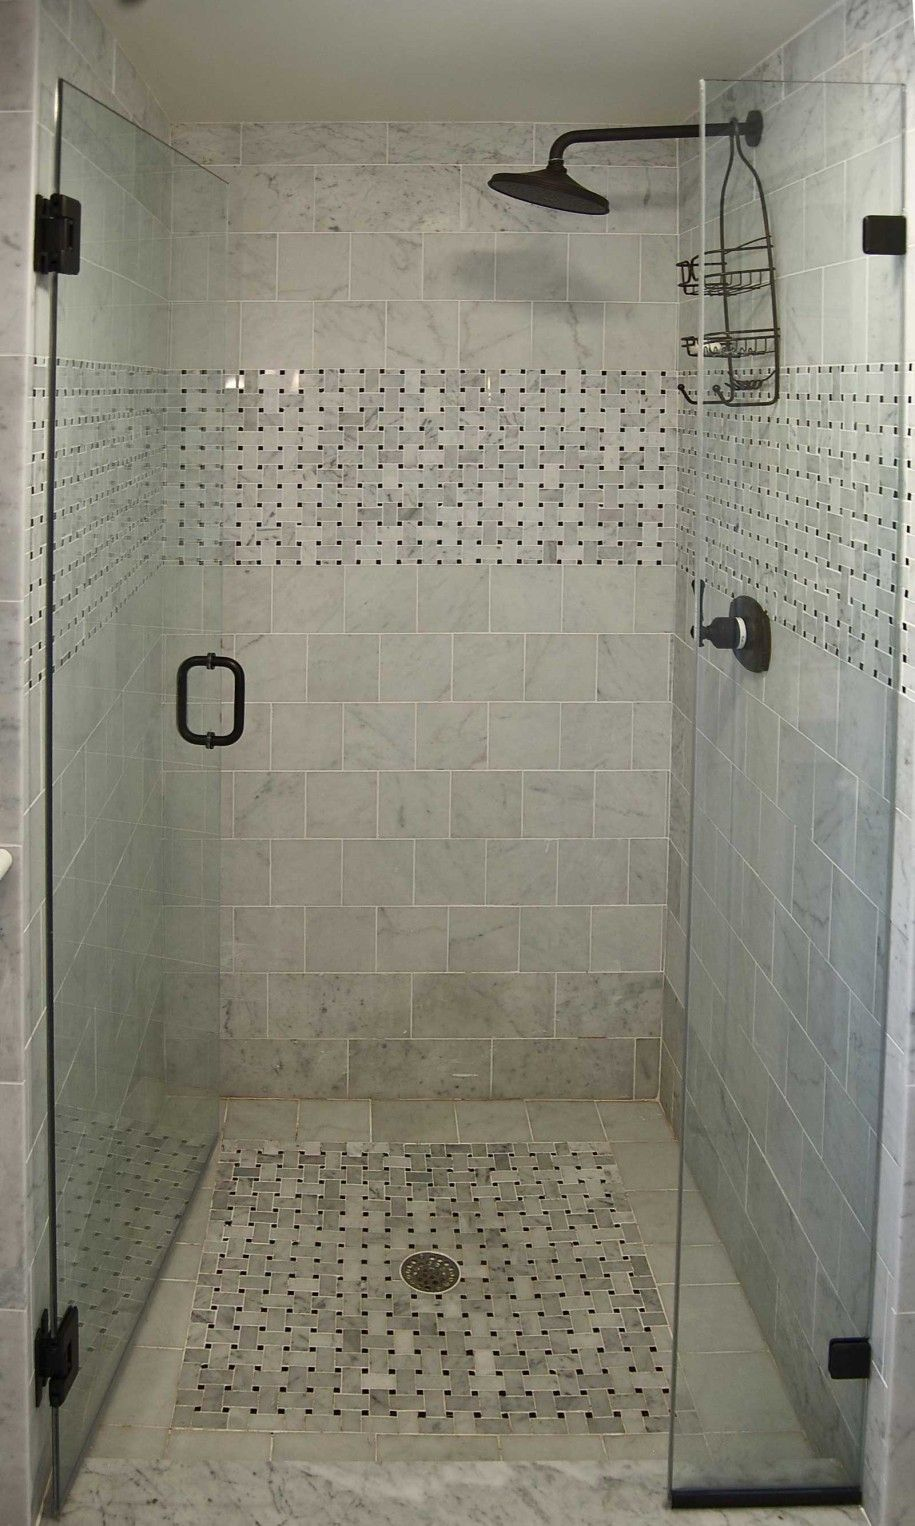 how to determine the bathroom shower ideas shower stall ideas for bathrooms with glass door and awesome tiling design showers for small ba - Bathrooms Showers Designs